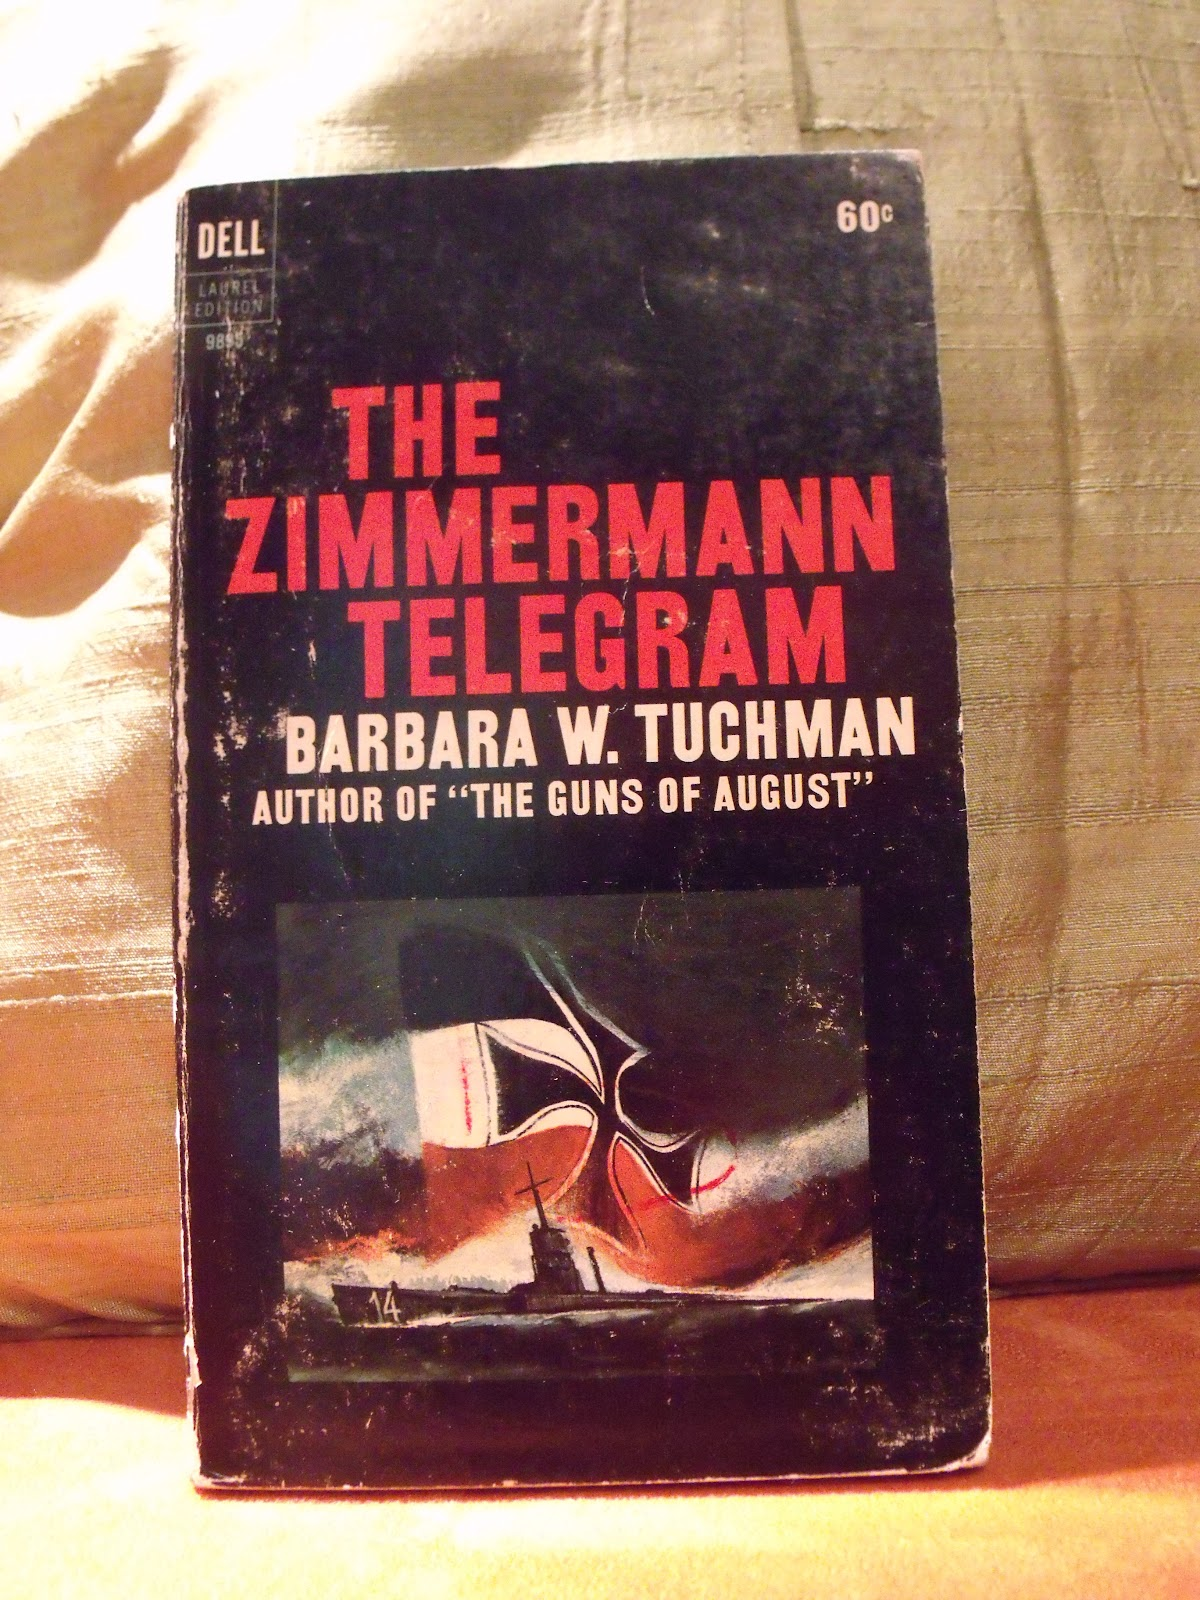 an analysis of the book guns of august by barbara tuchman Synopsis born in new york city on january 30, 1912, barbara tuchman is a two-time pulitzer prize winner her book the guns of august (1962), a historical analysis of early world war i, earned her.